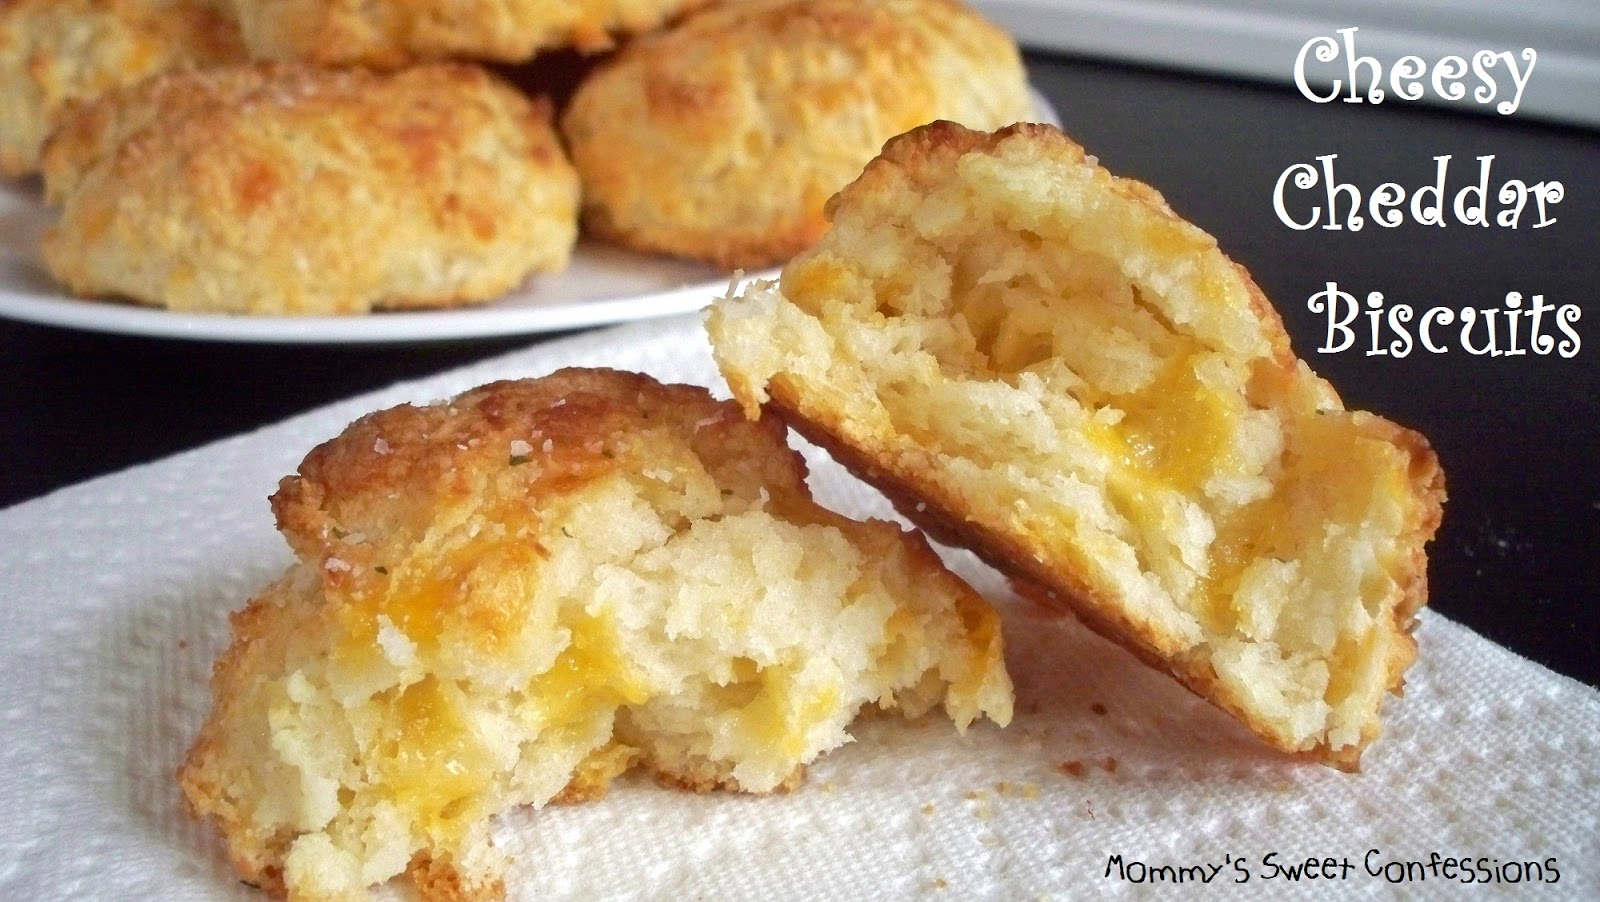 MOMMY'S SWEET CONFESSIONS: Cheesy Cheddar Biscuits